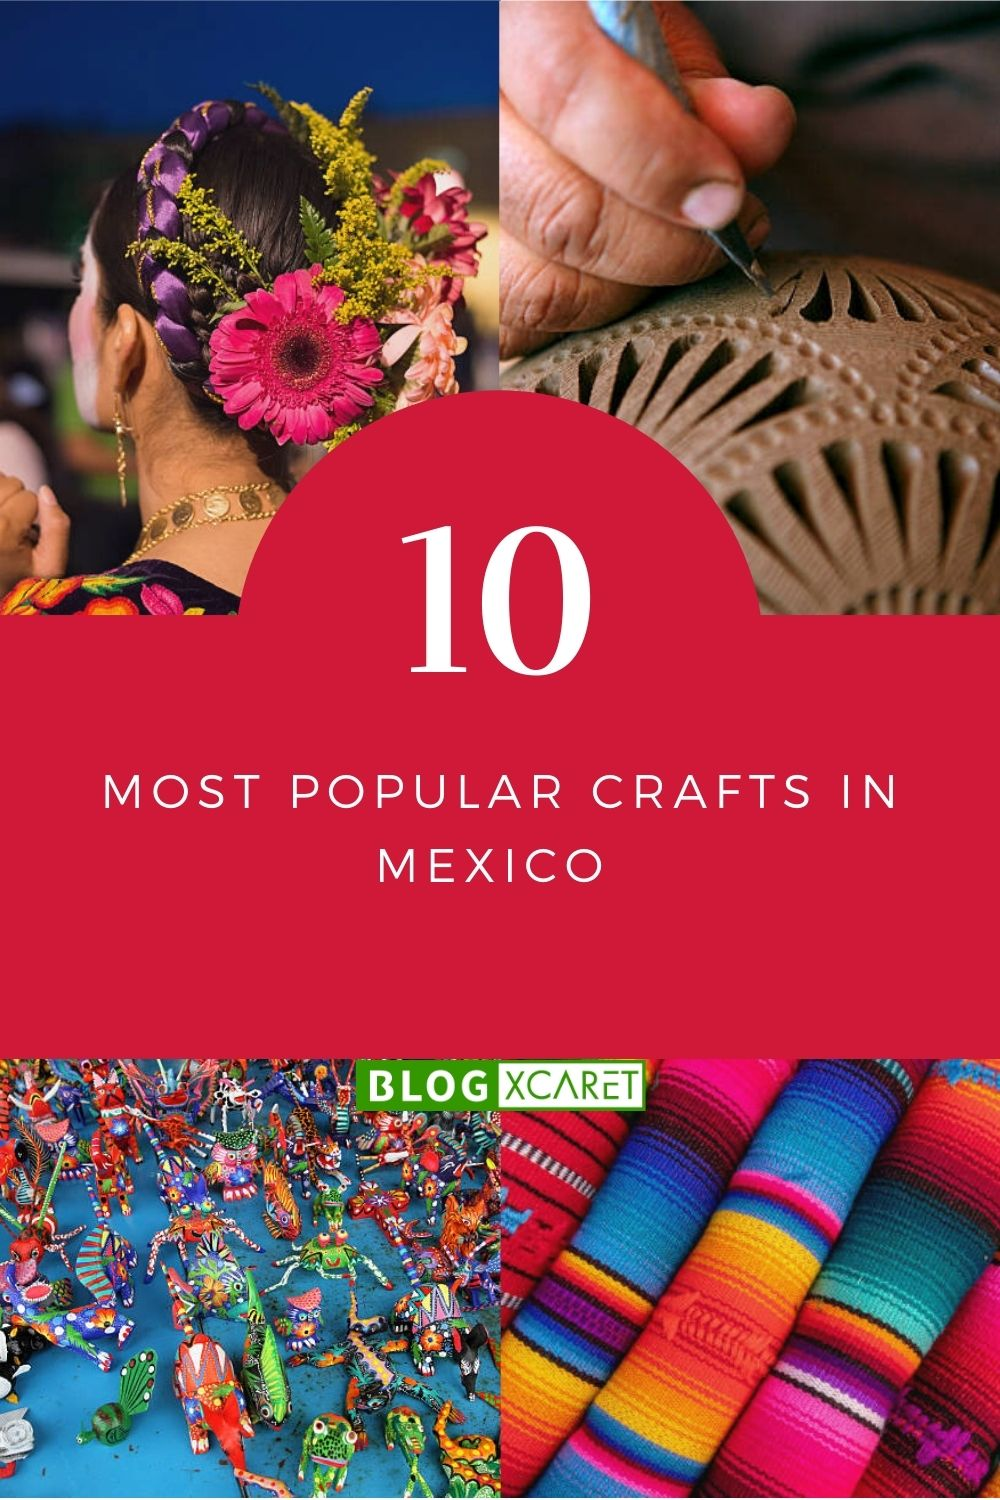 10 most popular crafts in Mexico